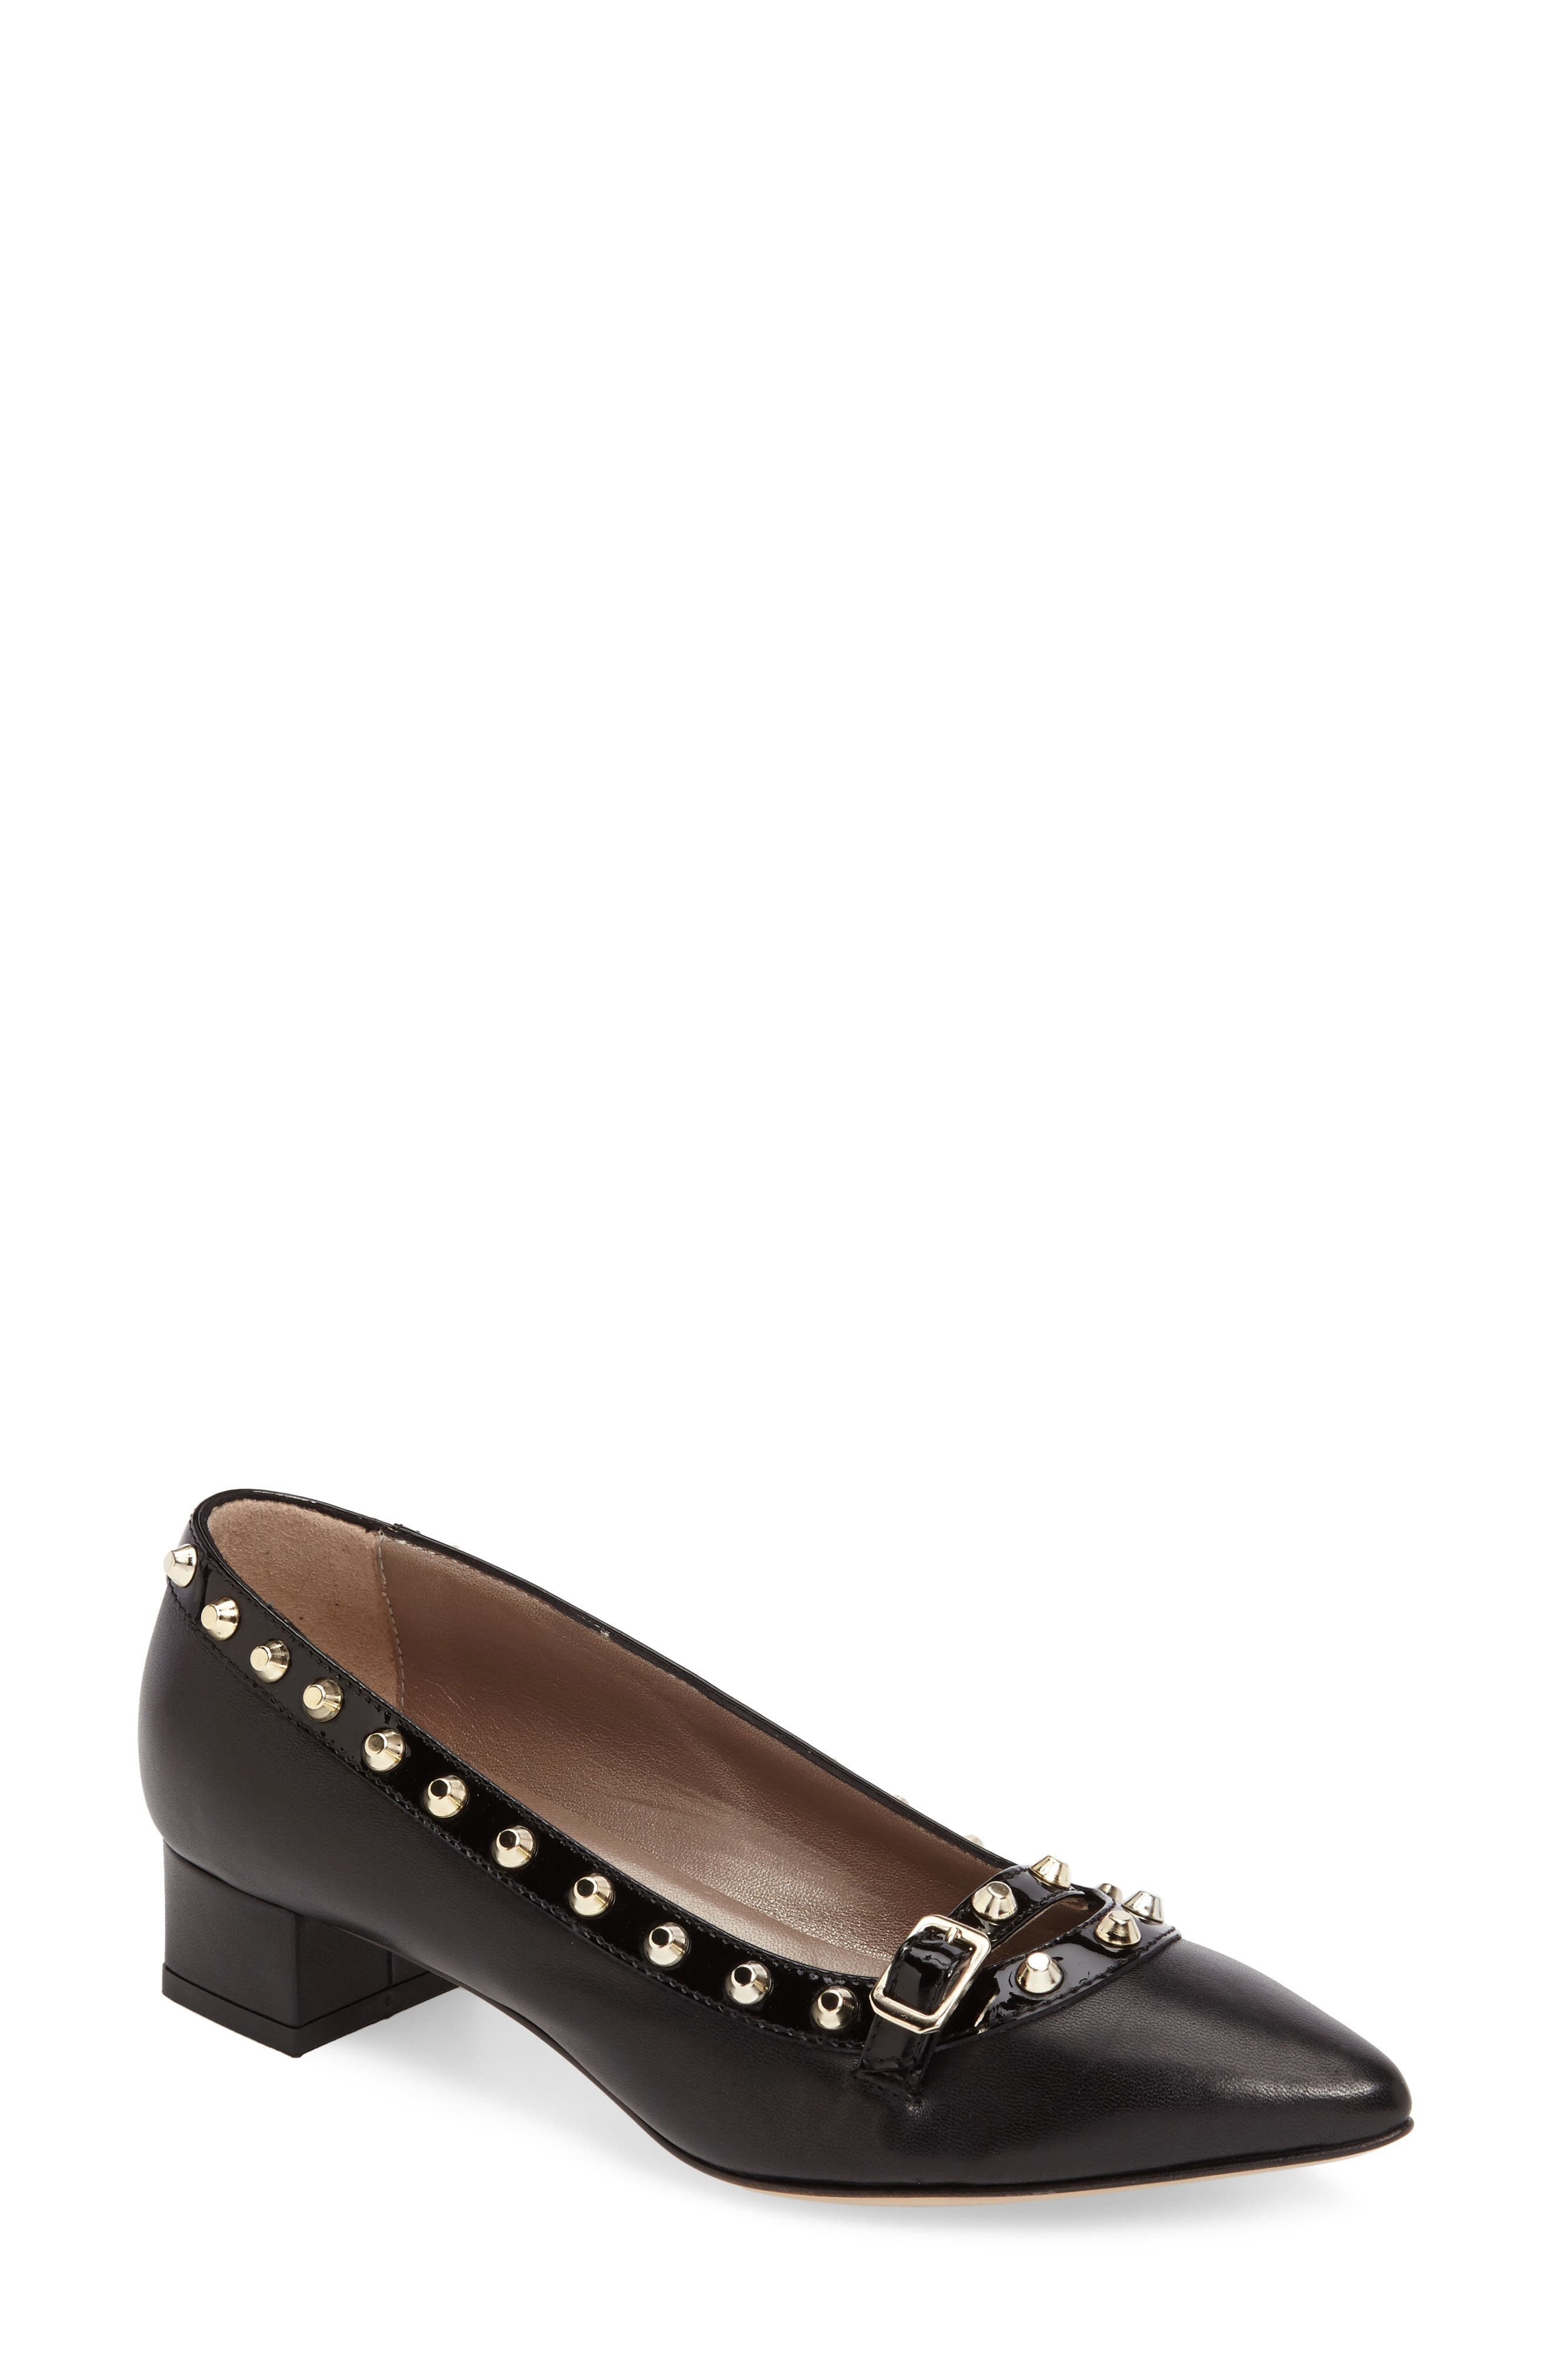 Studded Mary Jane Pump,                             Main thumbnail 1, color,